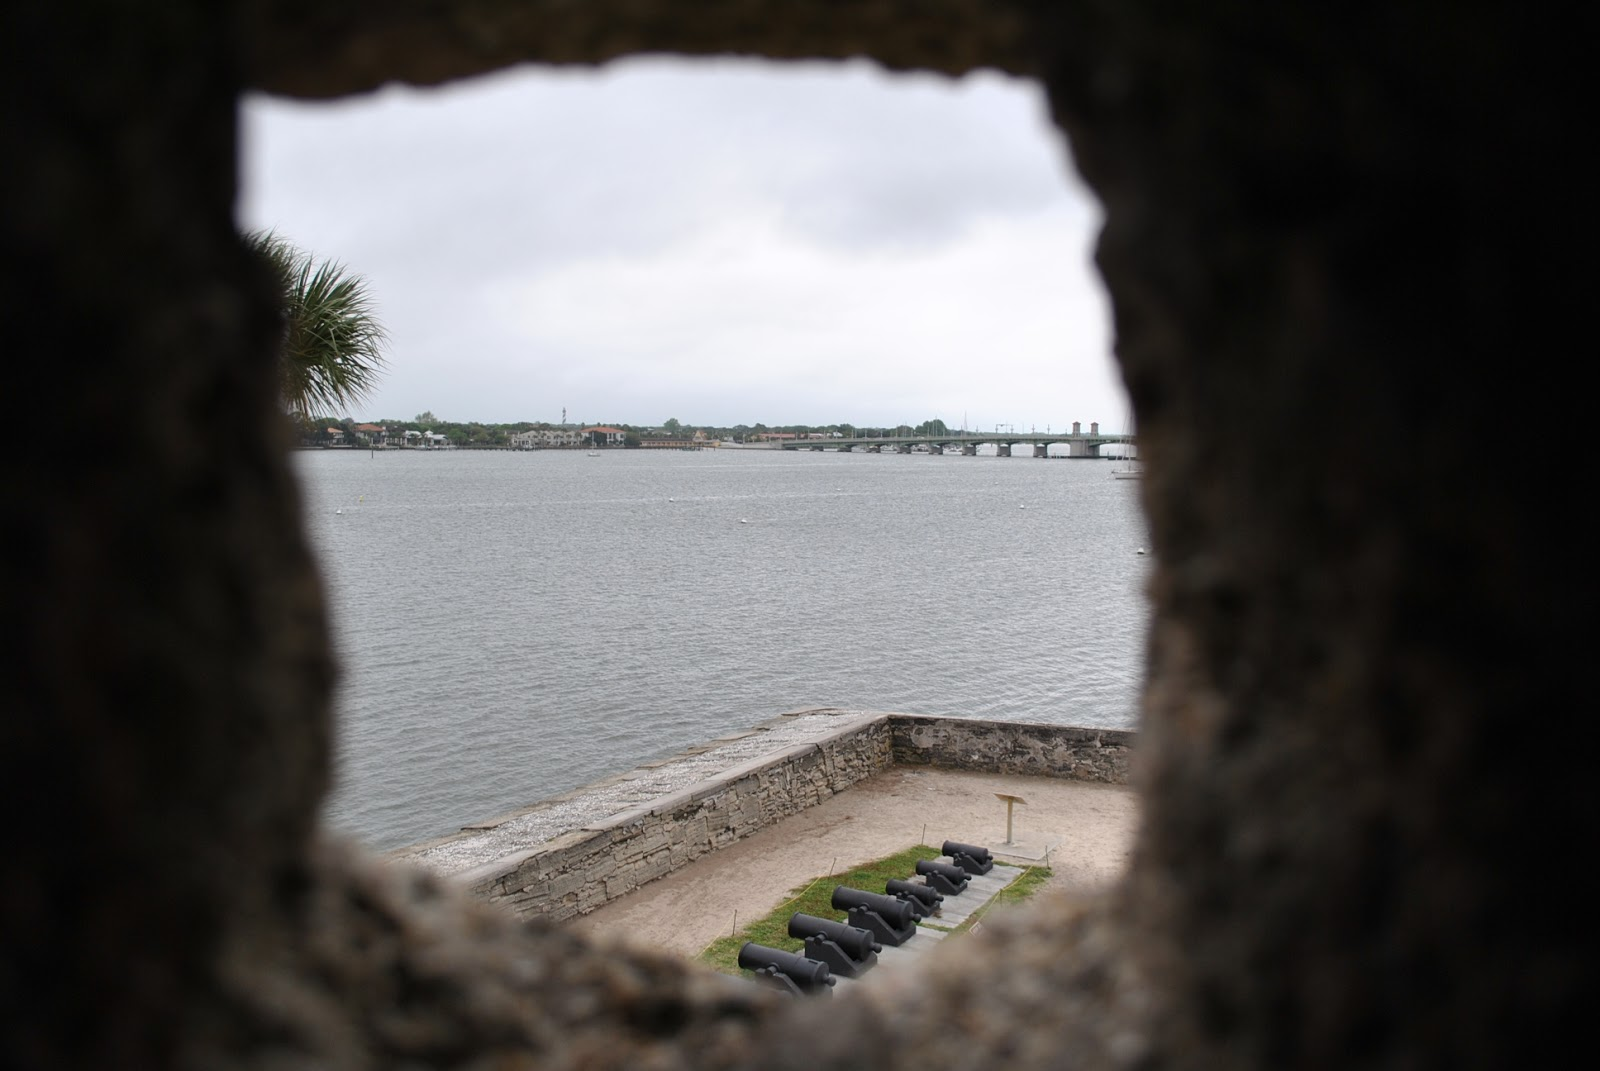 Peeking out the sentry box at Castillo de San Marcos in St. Augustine